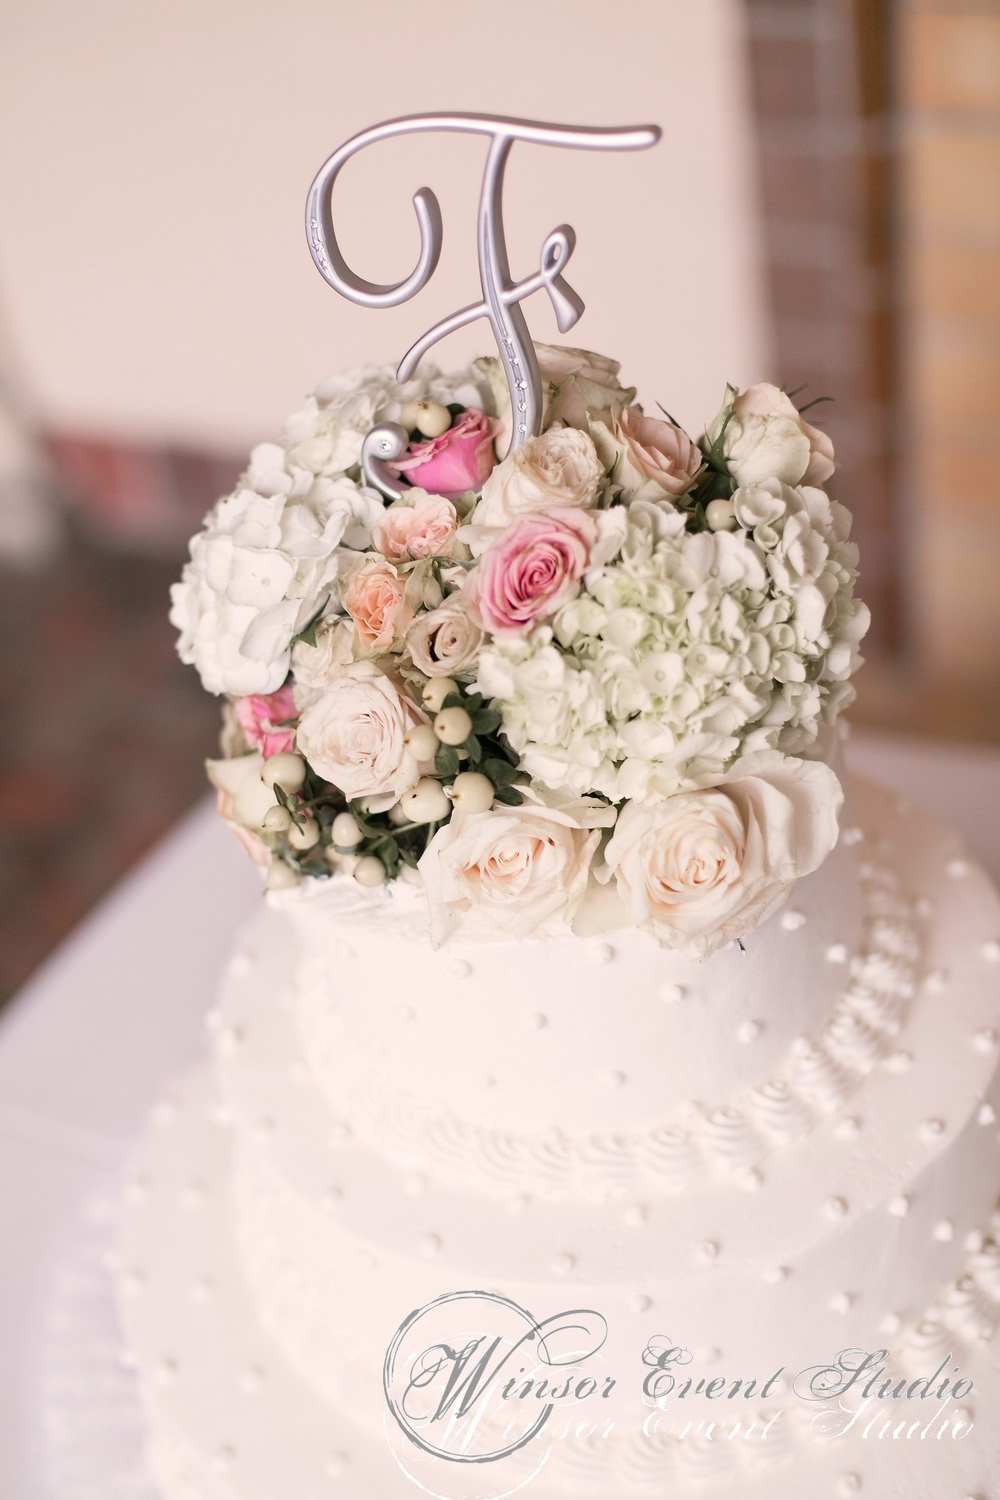 The buttercream dotted wedding cake (from Publix) was topped with fresh flowers and a silver monogram